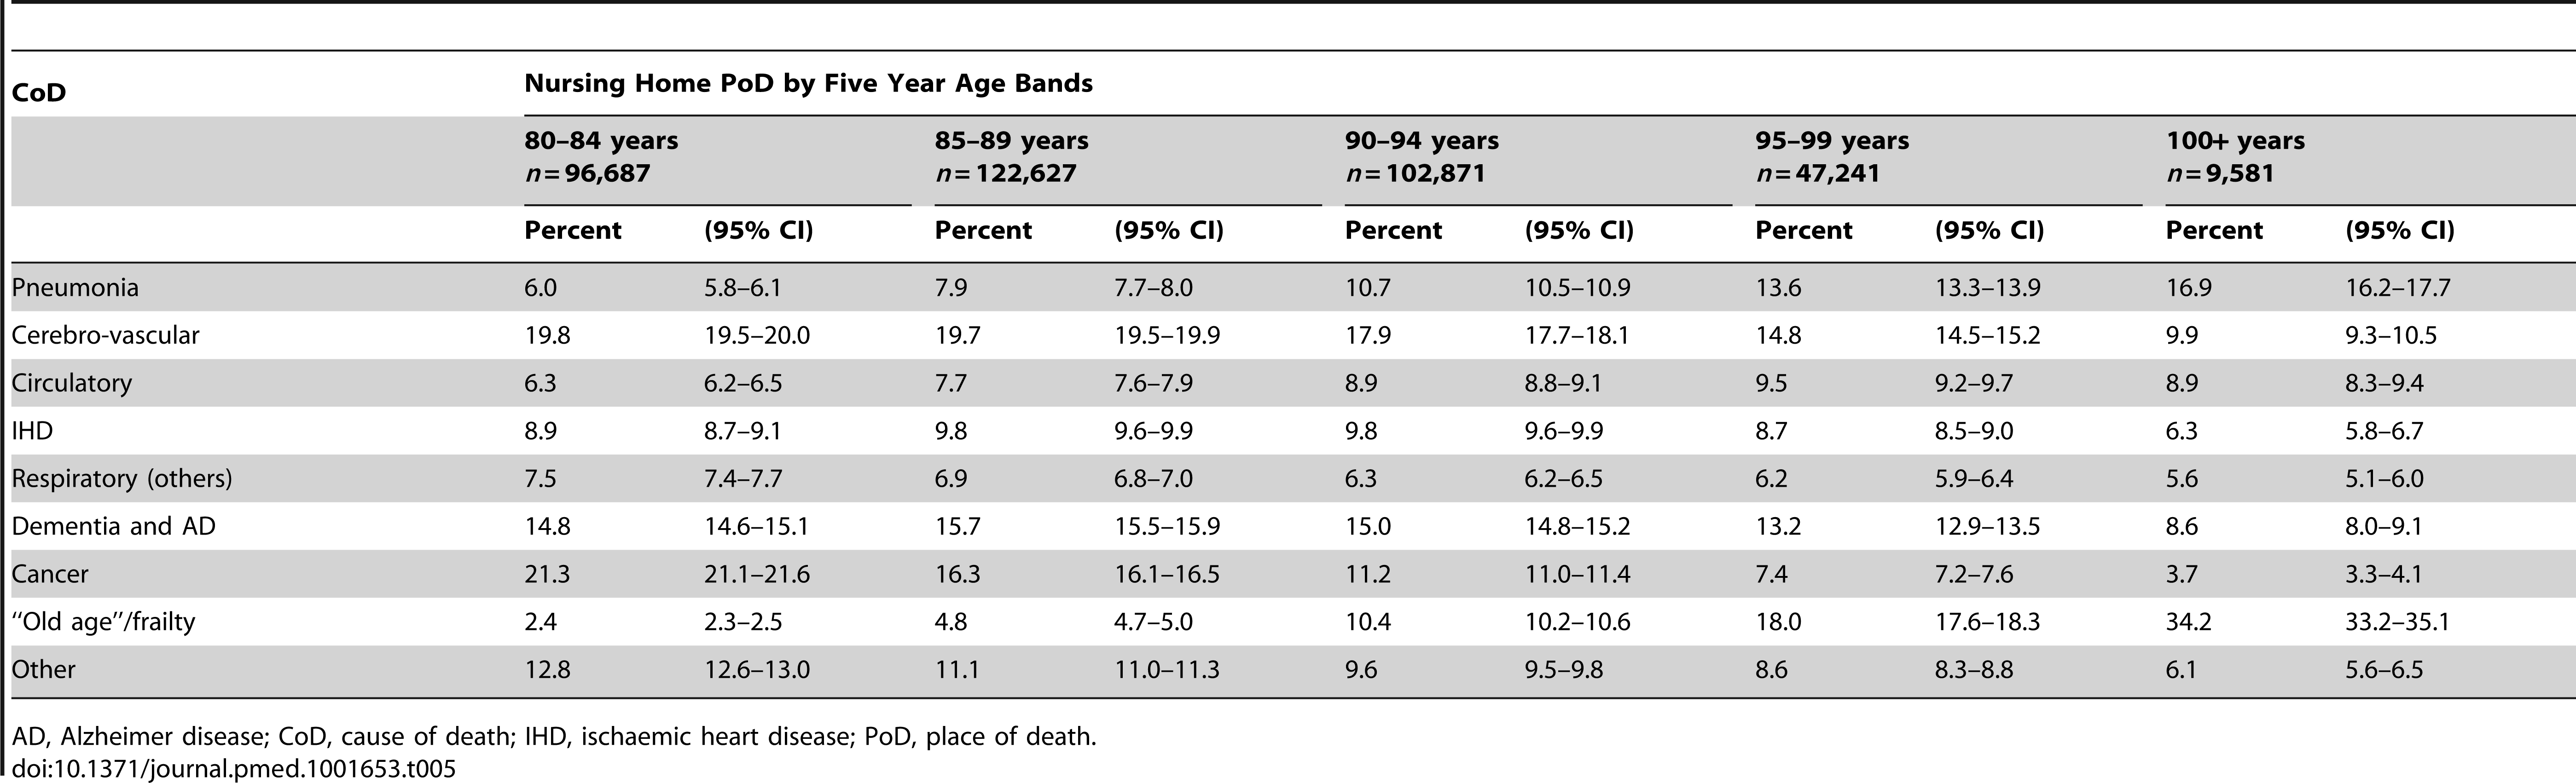 Cause of death by age bands and nursing home as place of death.